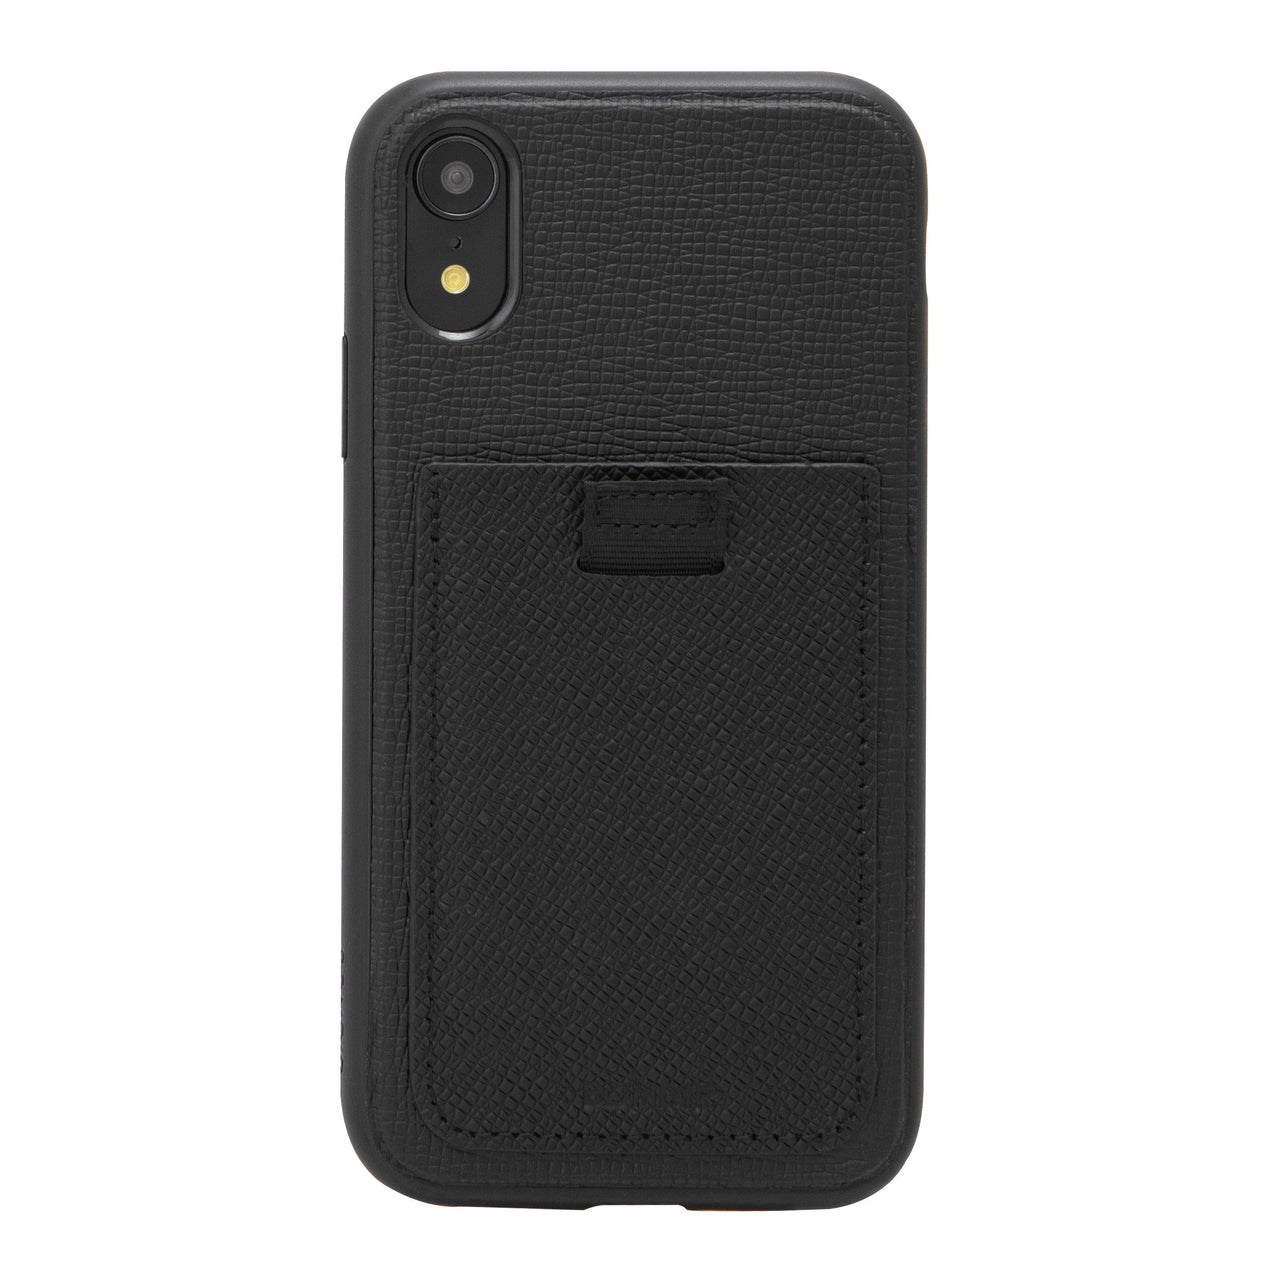 Case - Black Leather Wallet Case, IPhone XR